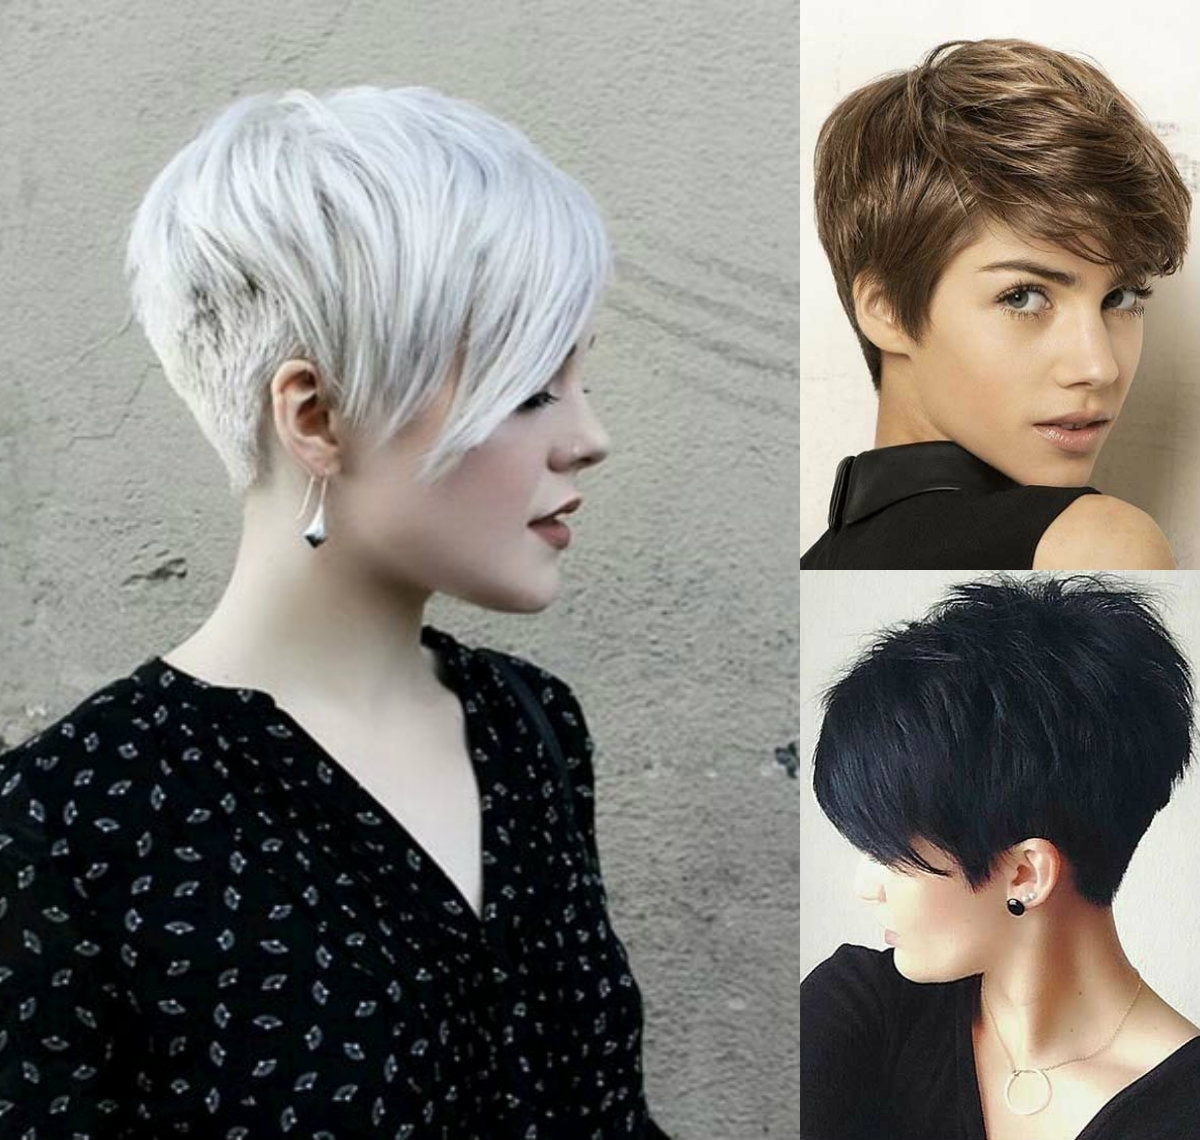 Vibrant Layered Pixie Haircuts 2017 | Hairdrome For Most Up To Date Pixie Hairstyles With Long Layers (View 4 of 15)